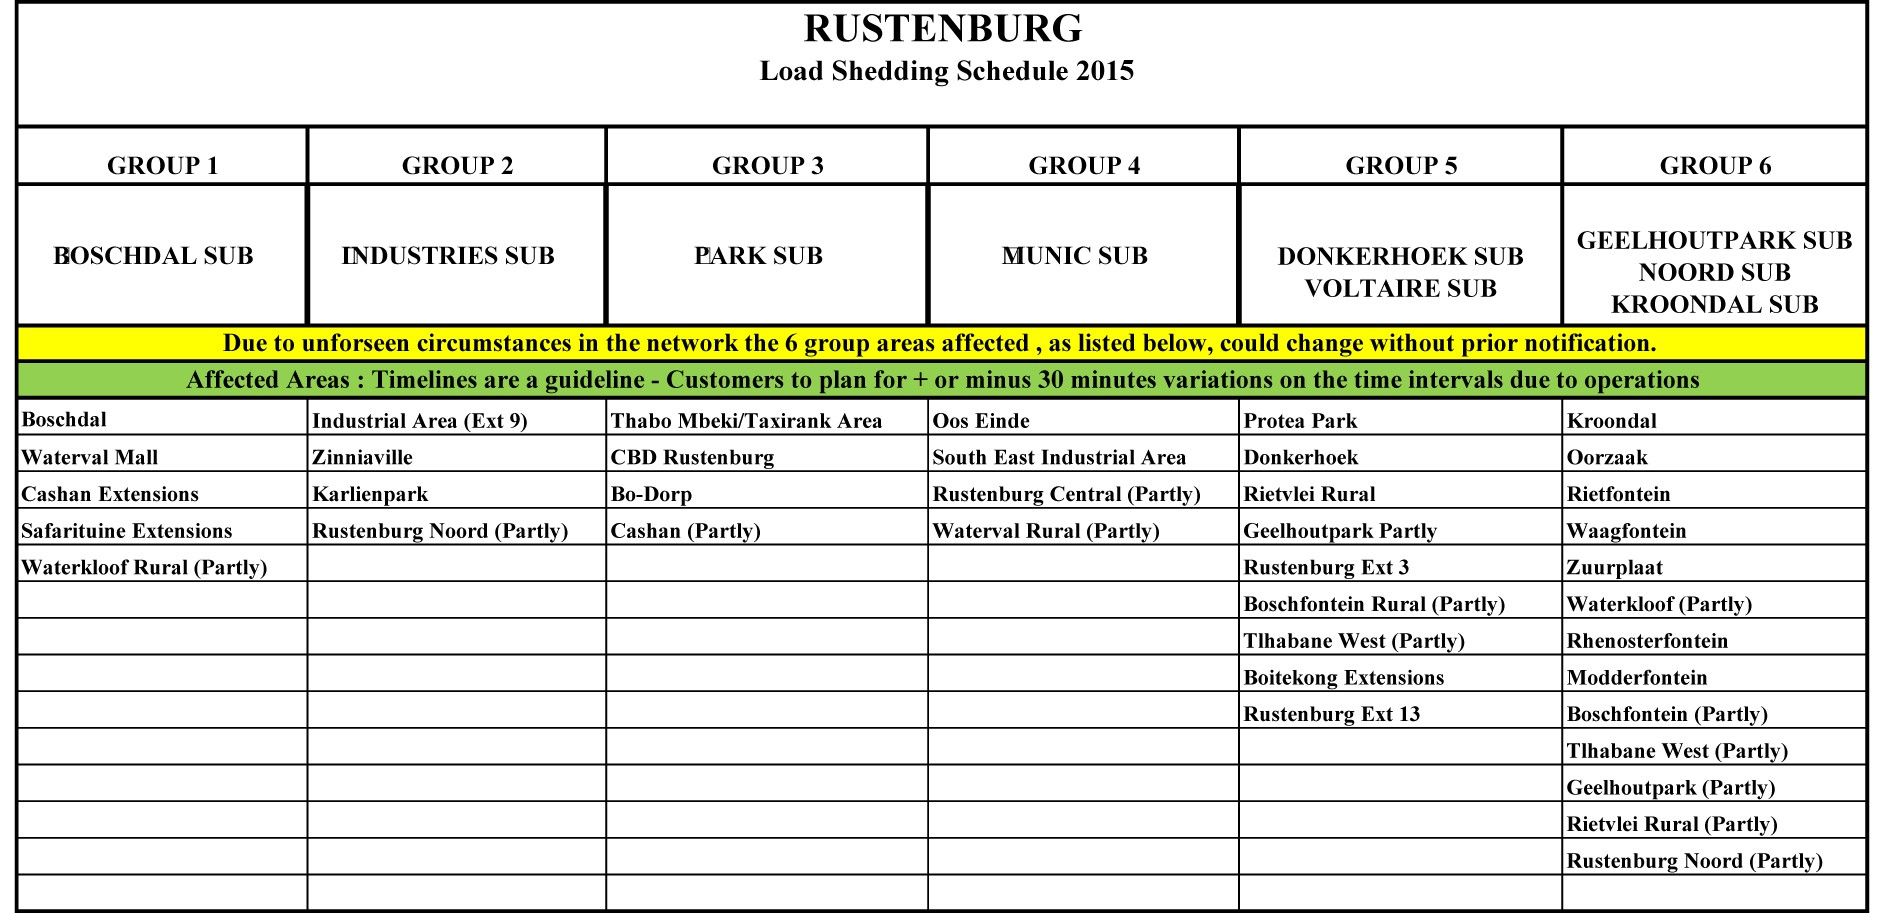 Load Shedding Schedule For Rustenburg